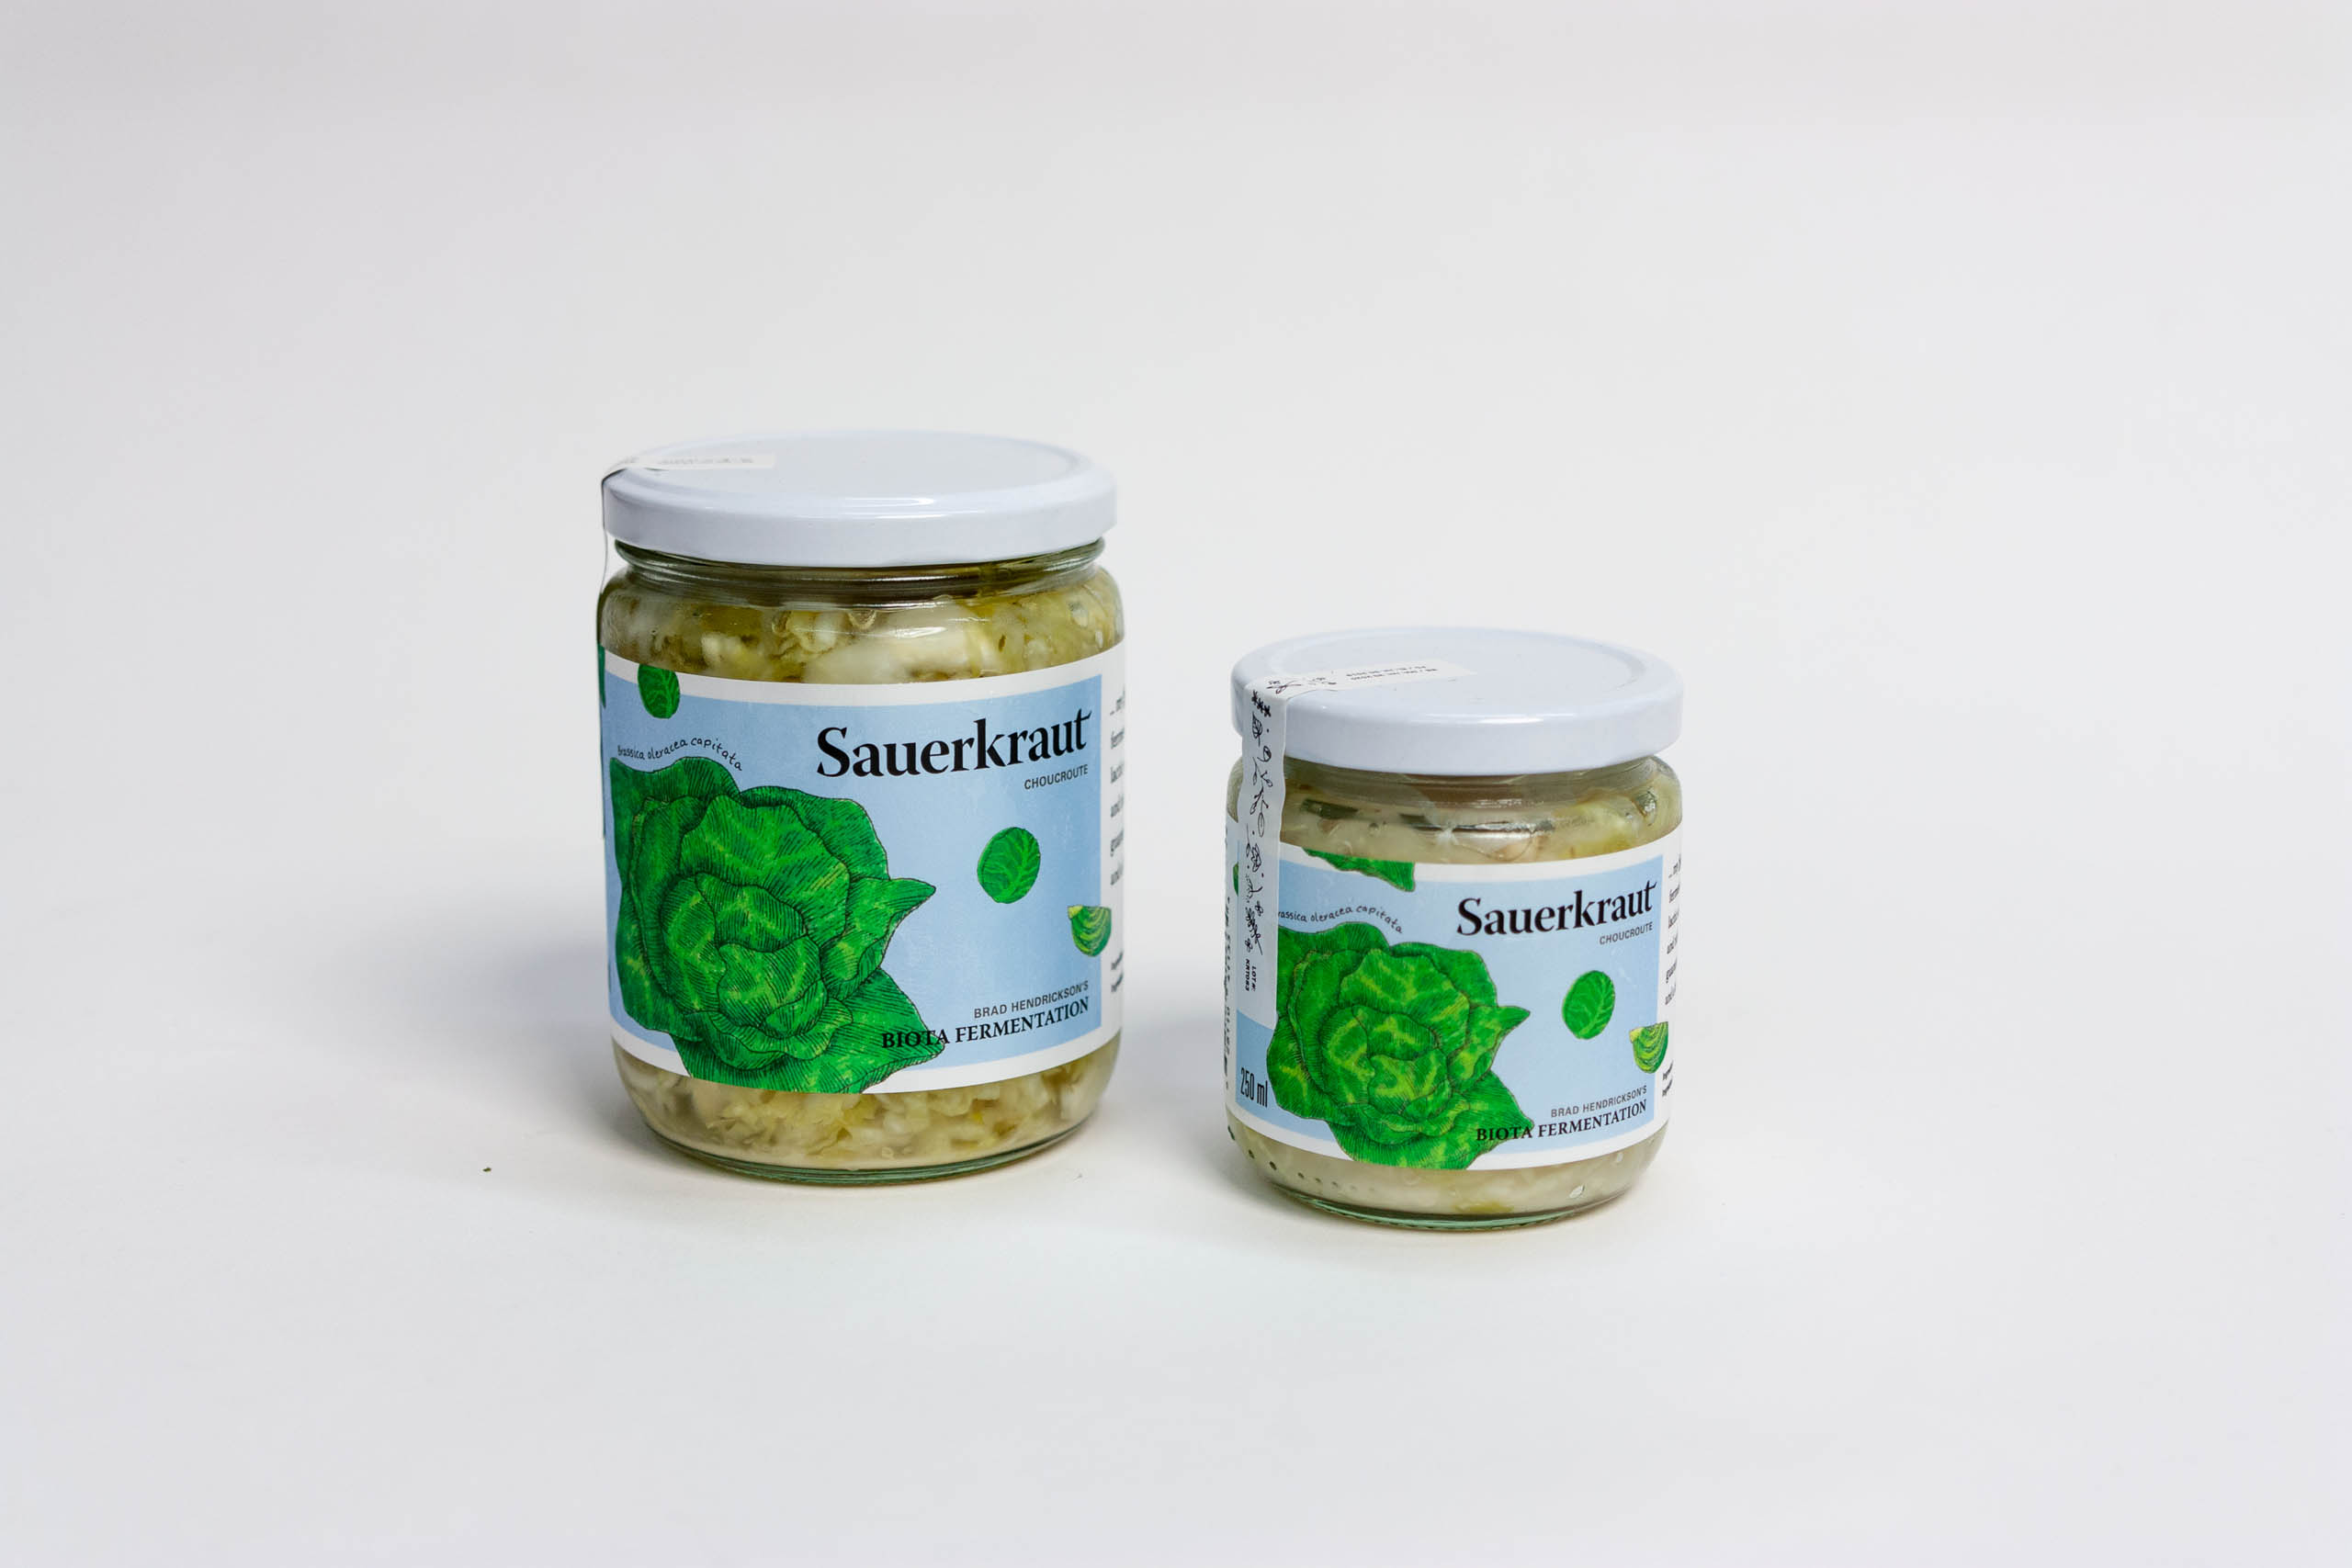 Saurkrauit Jars with vibrant green cabbage illustration on a light blue background — by Yagnyuk.